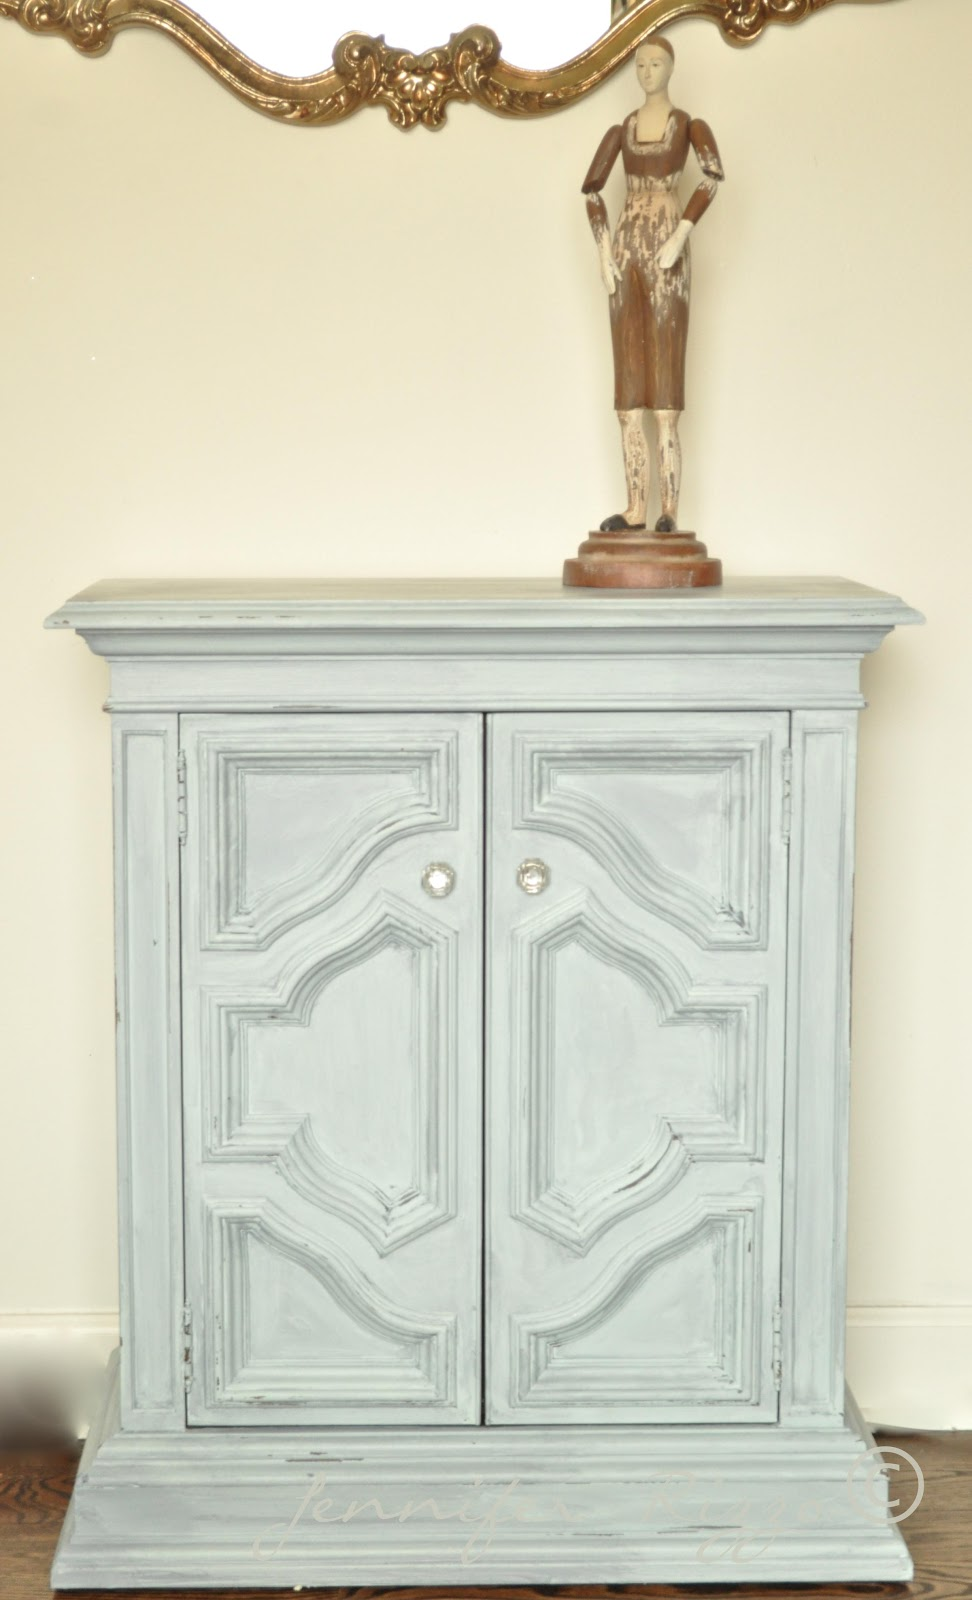 Move Furniture Painting Olddated Cabinet Repainted And Madeover With New Knob Placement .